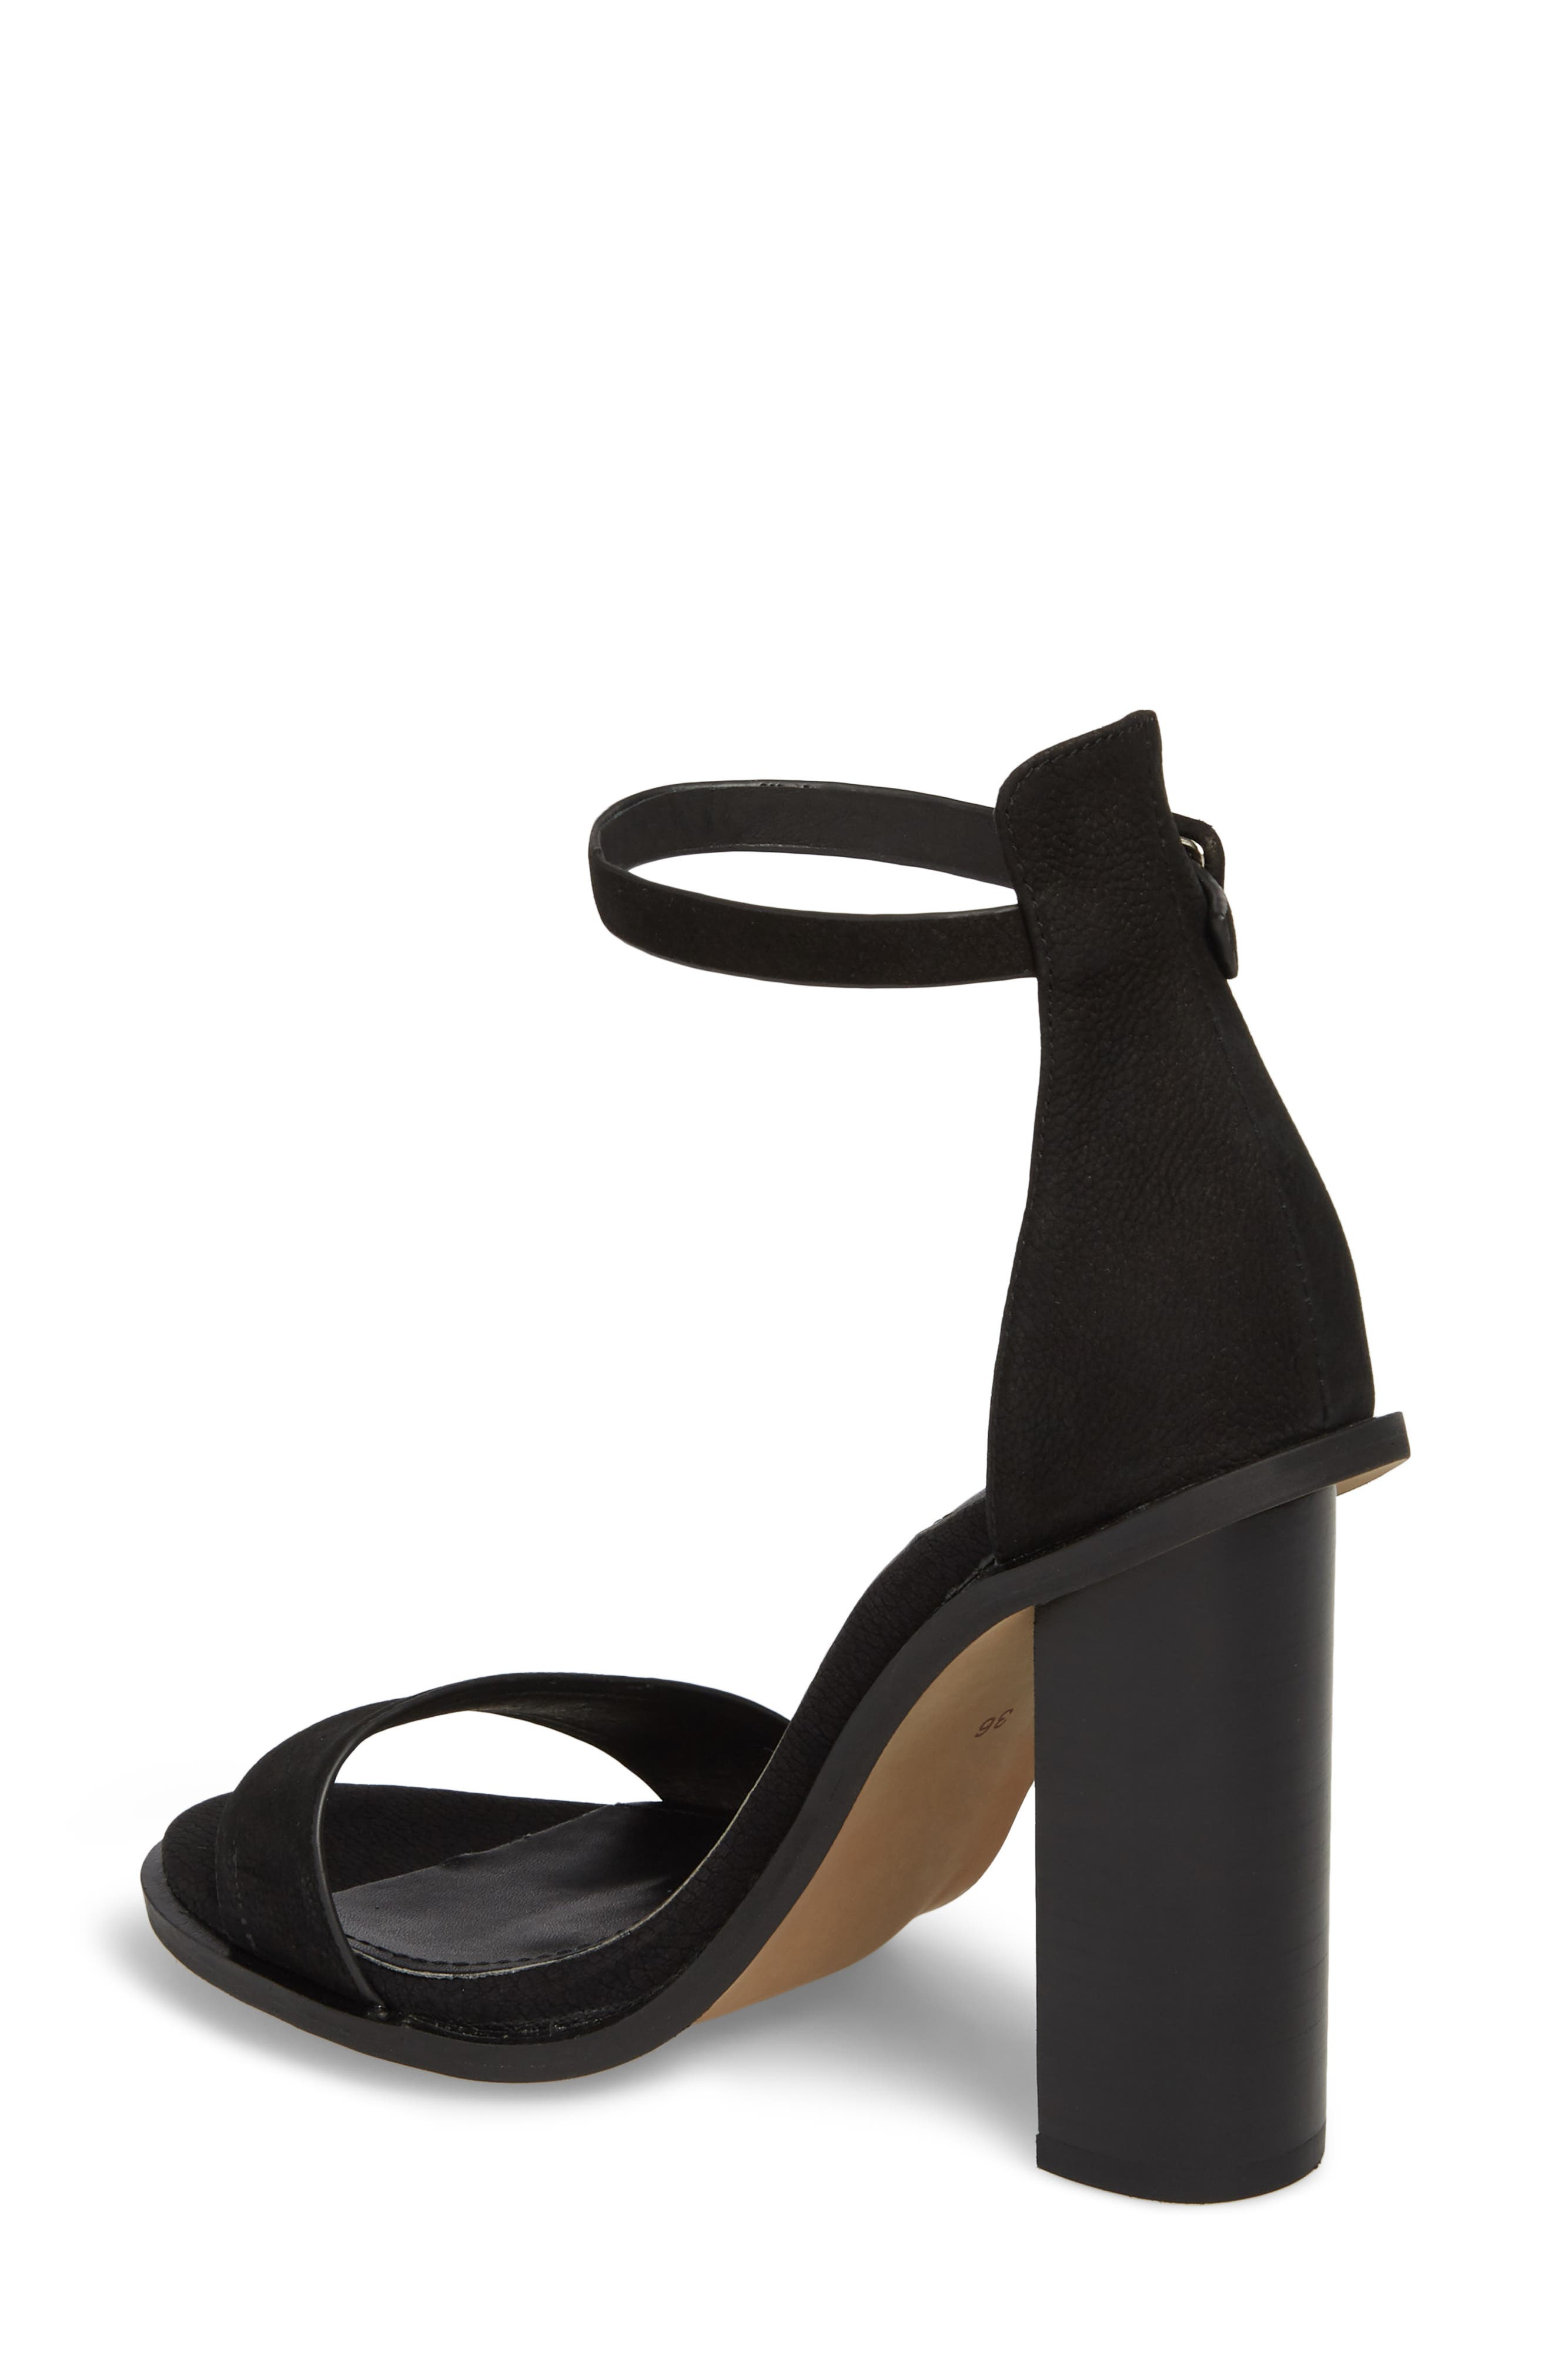 Addax Sandal,                             Alternate thumbnail 2, color,                             BLACK NUBUCK LEATHER